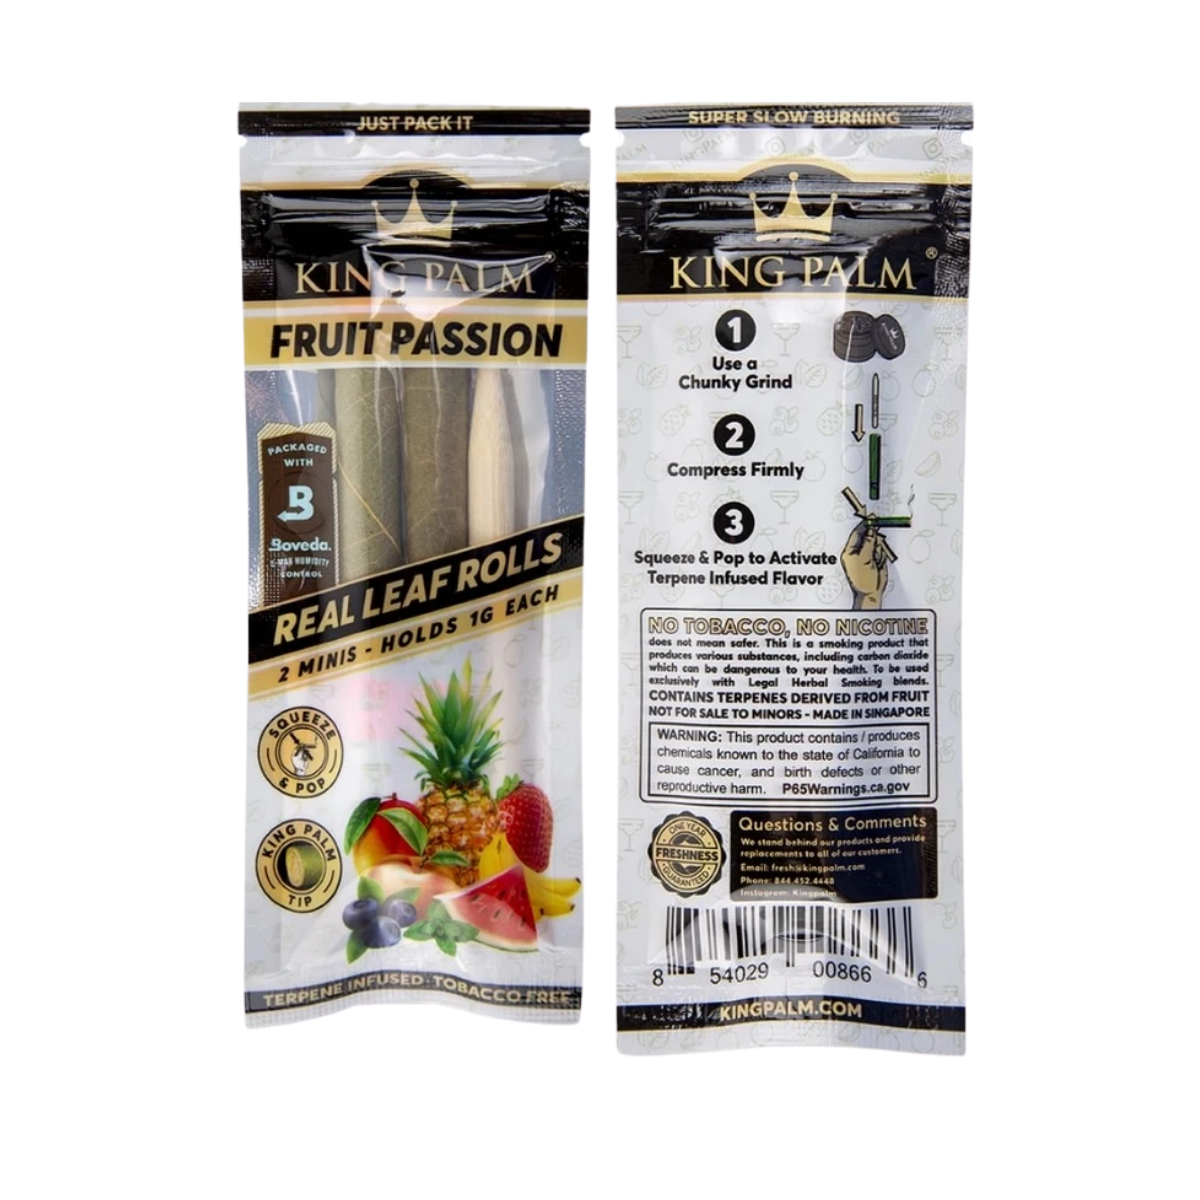 King Palm Super Slow Burning Wraps Pack with 2 Mini Rolls - Fruit Passion Flavour - Holds 1g each - The Green Box Australia